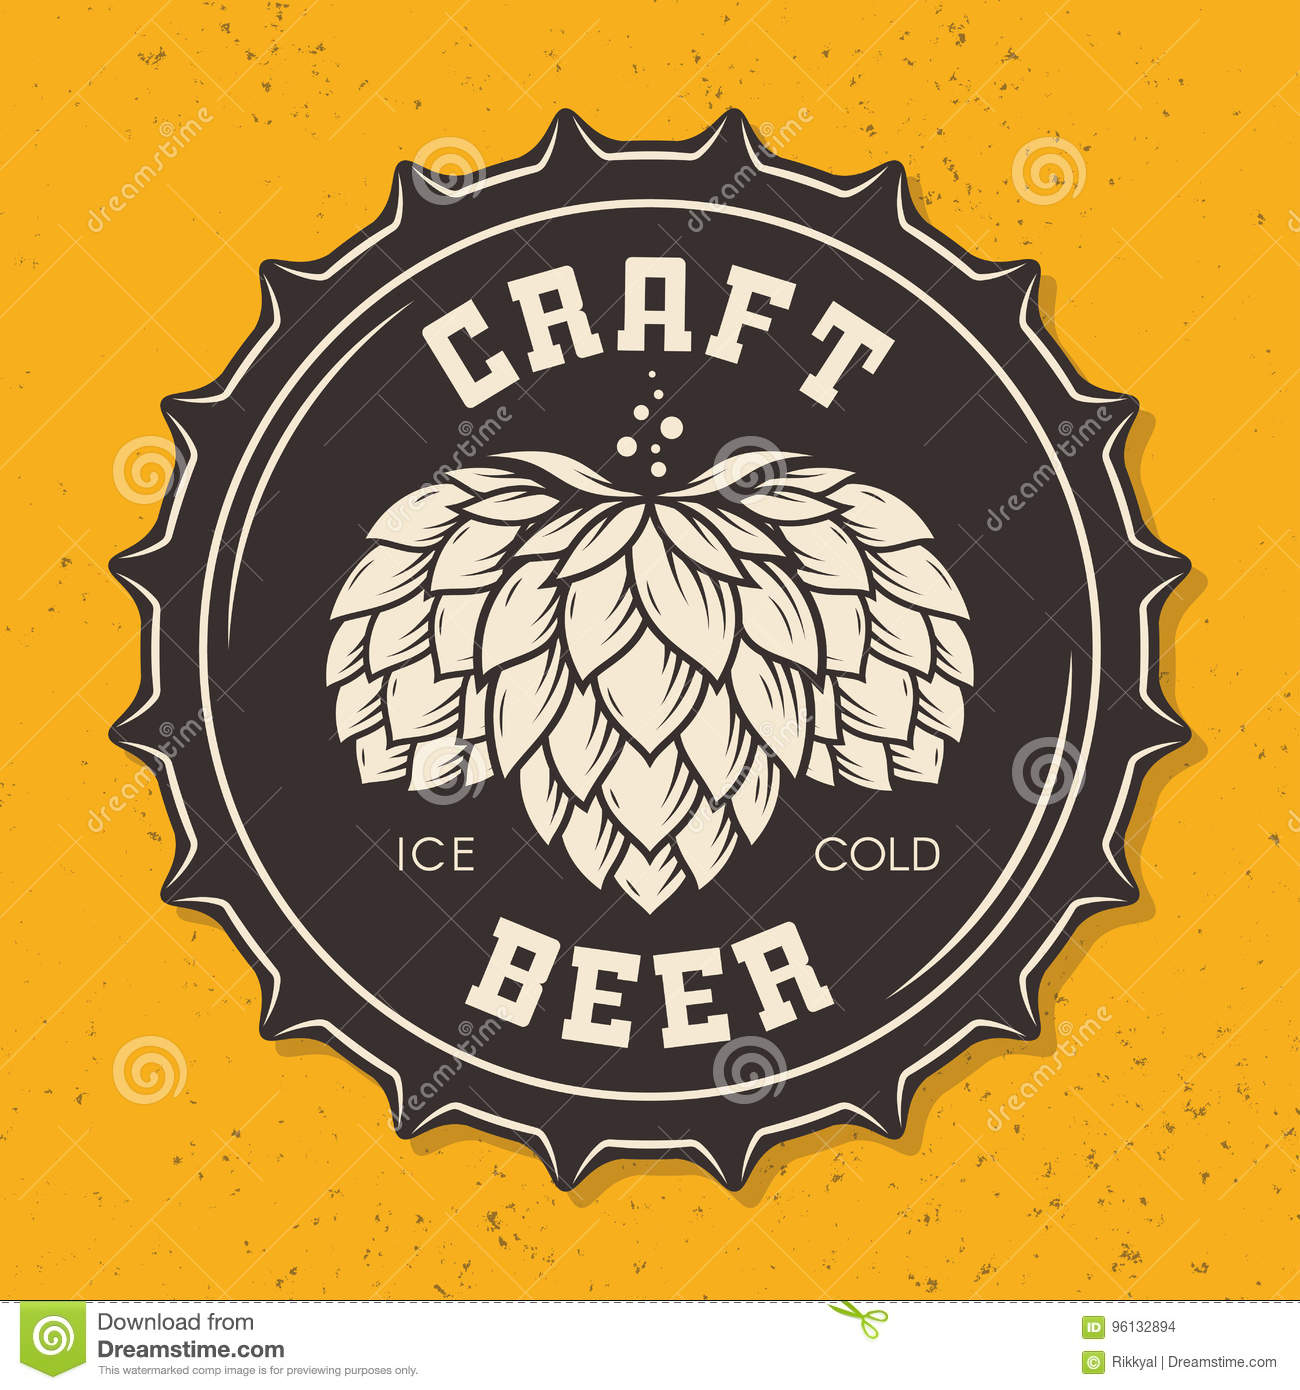 Download Illustration Of Craft Beer Bottle Cap With Hops Stock Vector - Illustration of graphic, brewing: 96132894